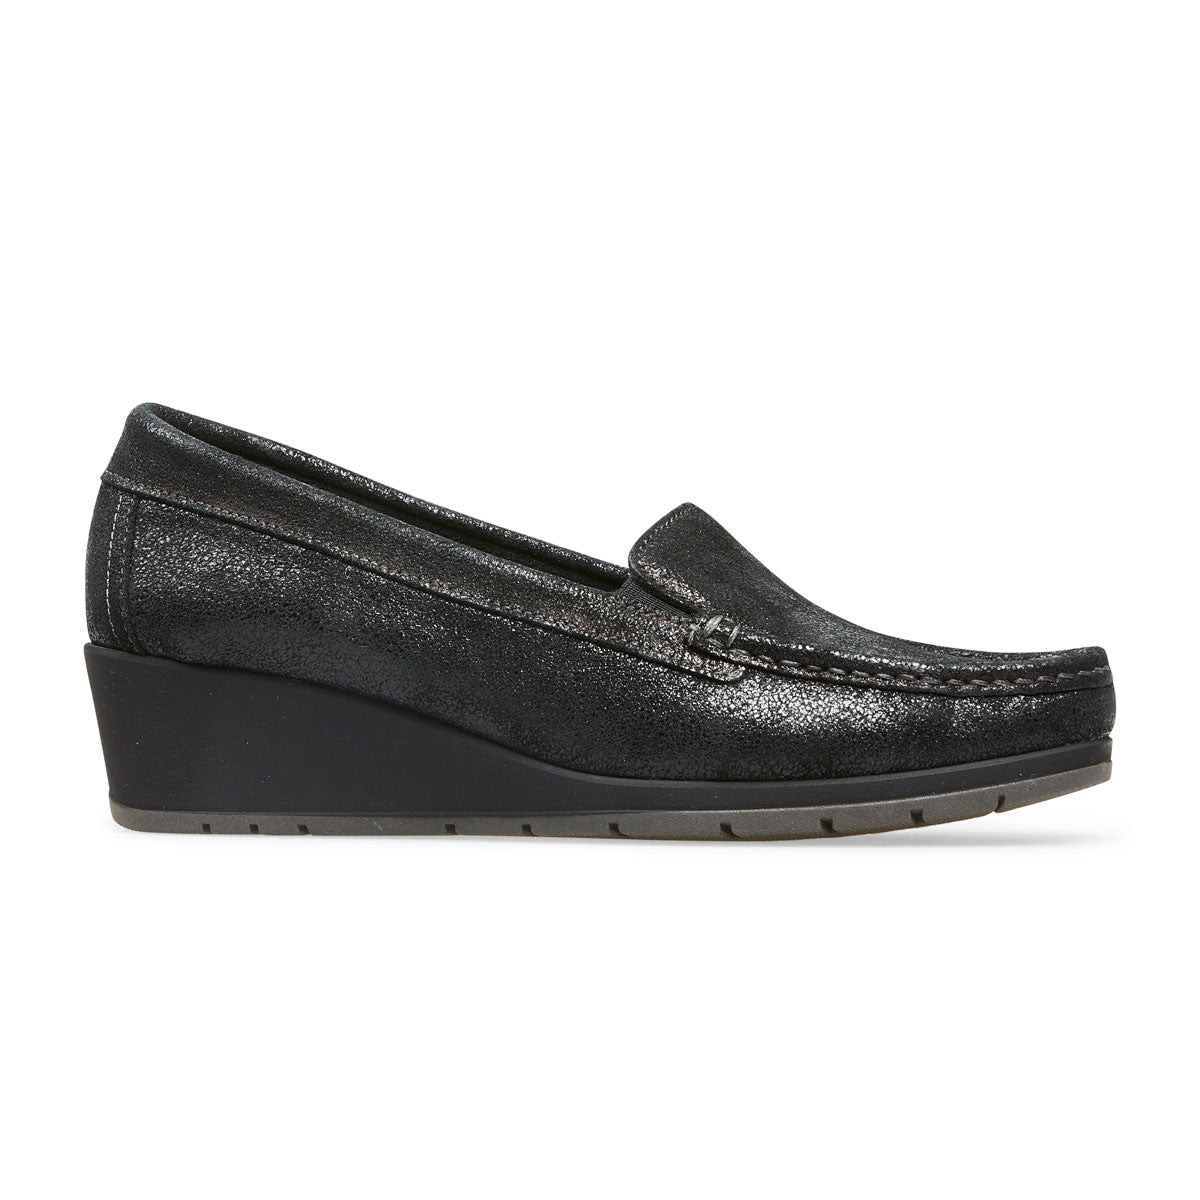 Megan Wedge Heel Loafer Shoe